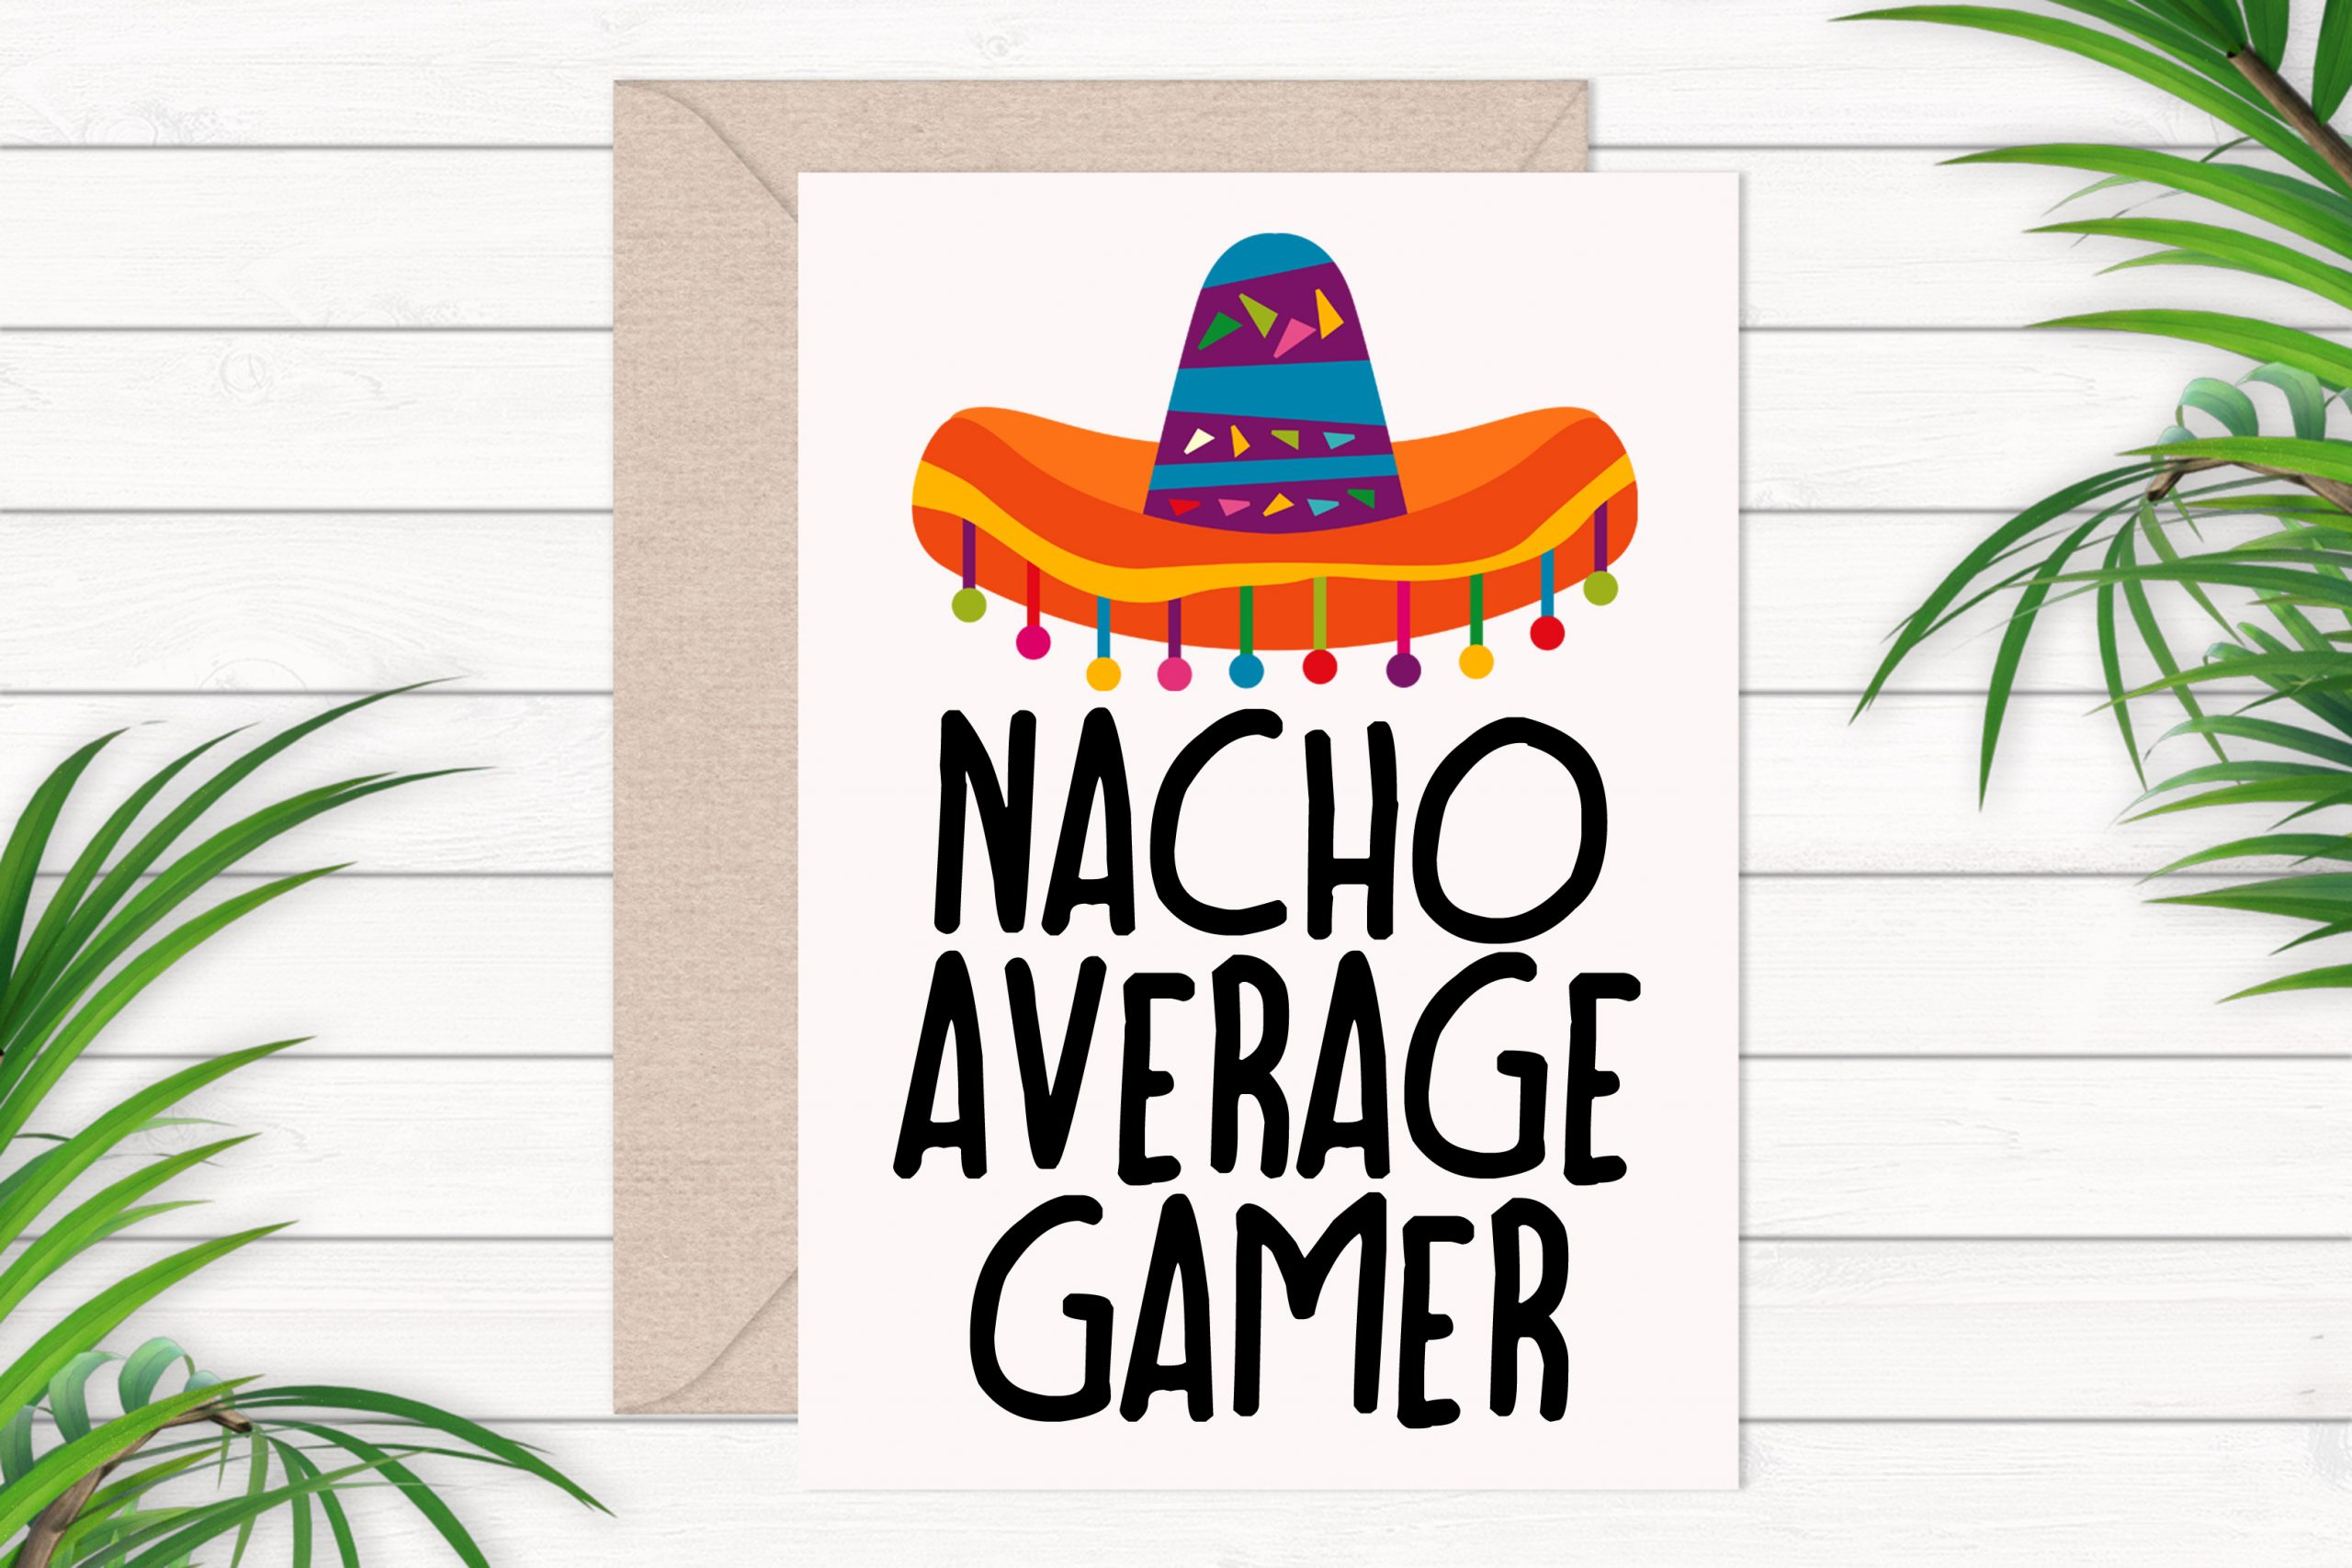 nacho-average-gamer-card